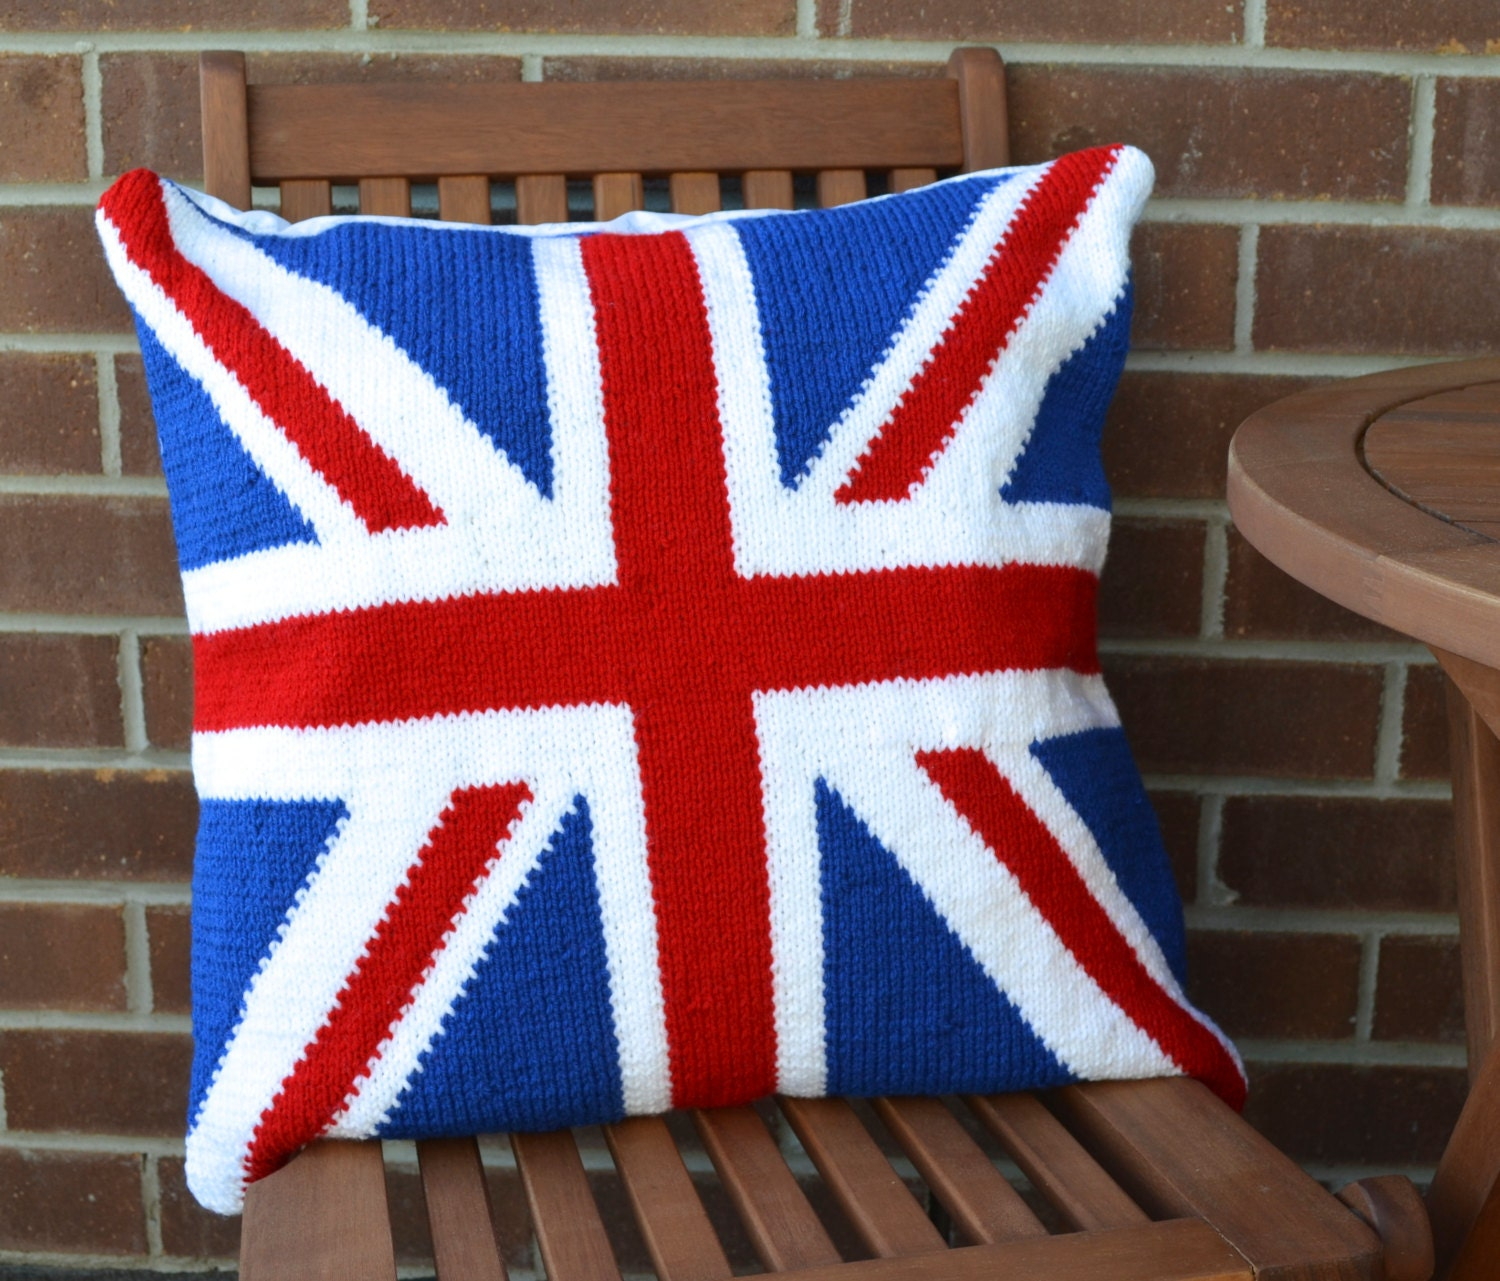 Free Knitting Pattern For Union Jack Cushion Cover : Union Jack Flag Knitted Pillow Cover by AndreasDyelotDesigns